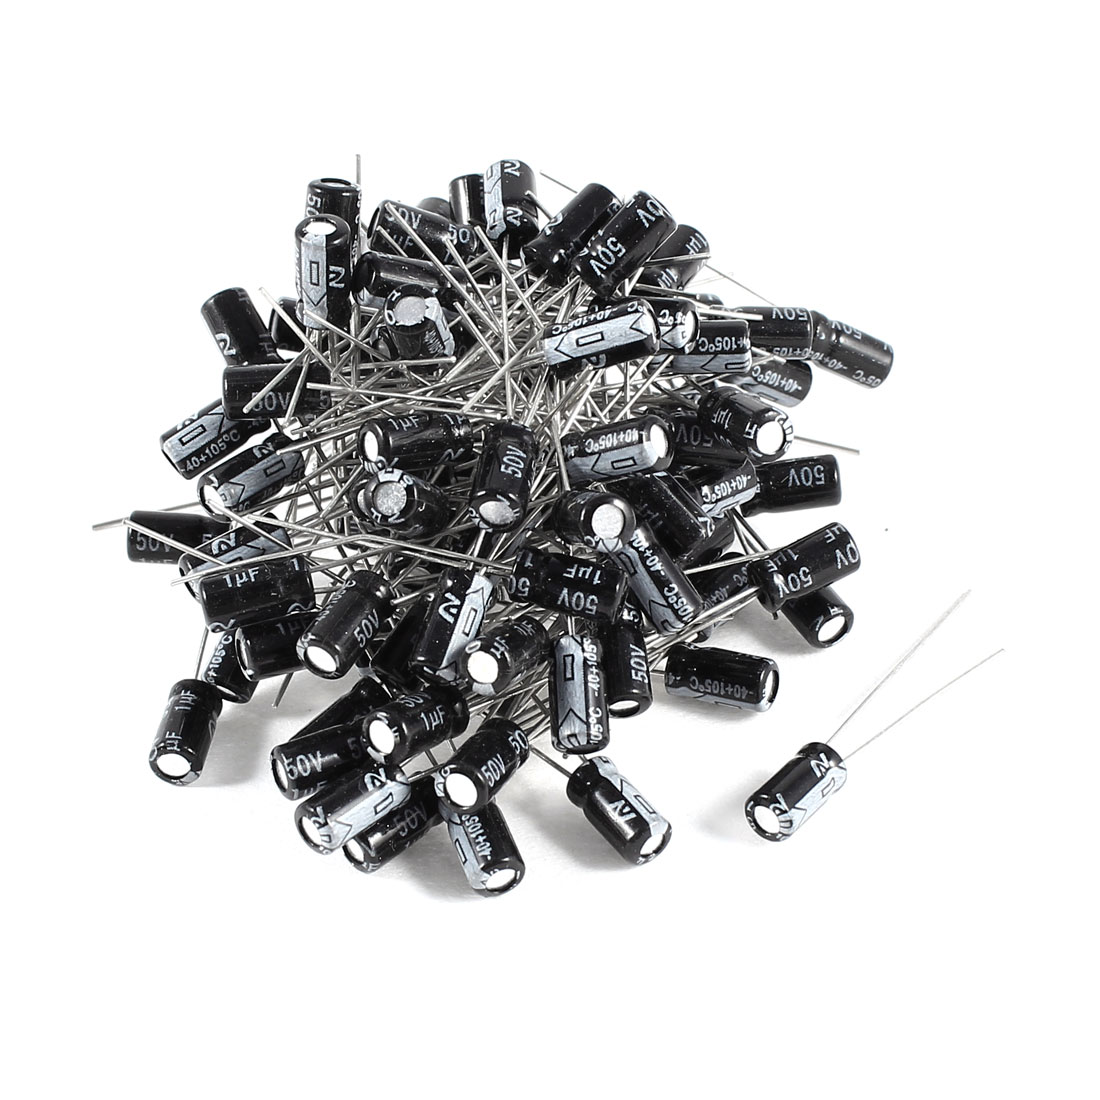 100 Pcs 1uF 50V Radial Leads Aluminum Electrolytic Capacitors 4x11mm